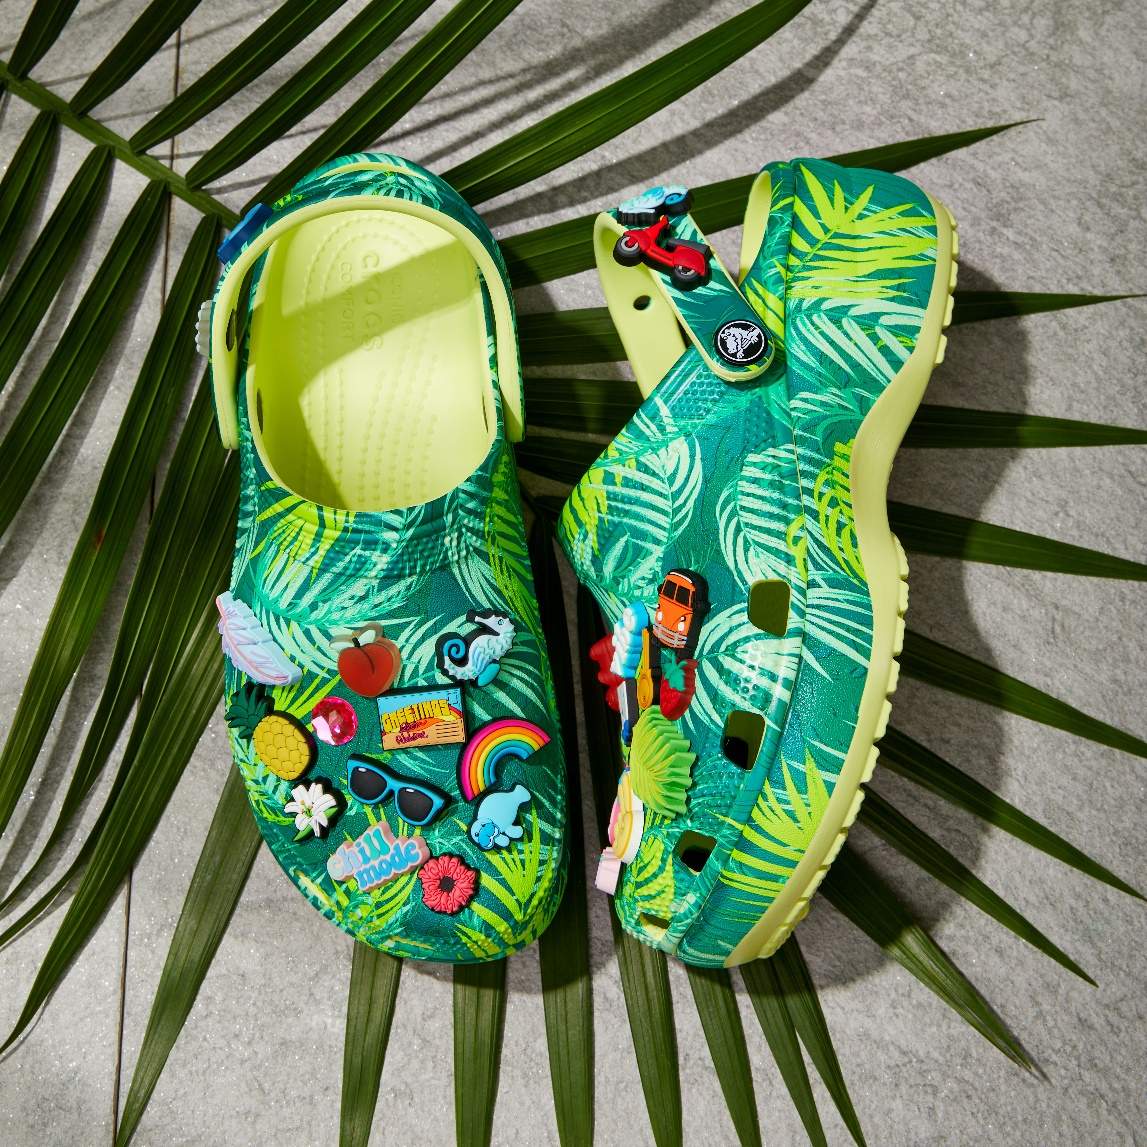 Crocs wore tropical print clogs and unveiled new sandals